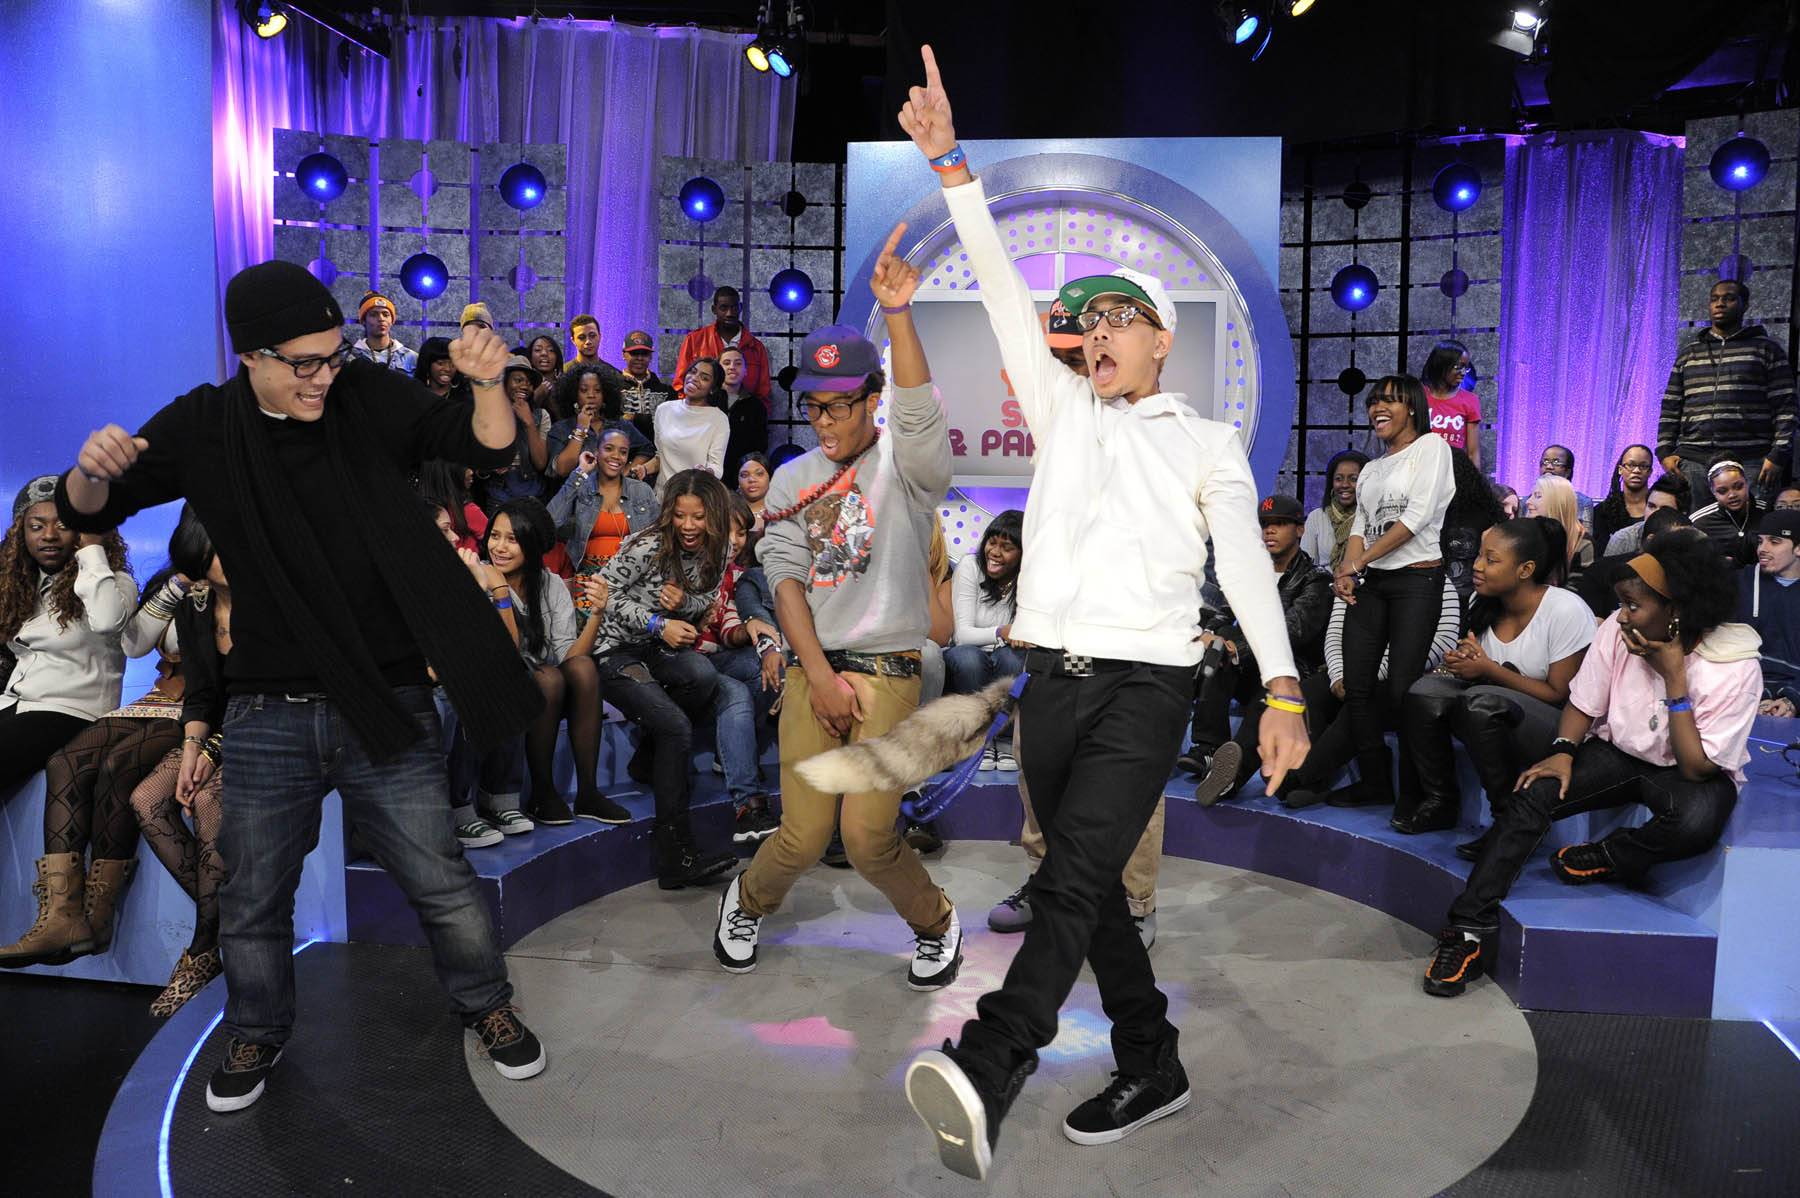 One Finger Up - Audience members at 106 & Park, January 30, 2012. (Photo: John Ricard / BET)